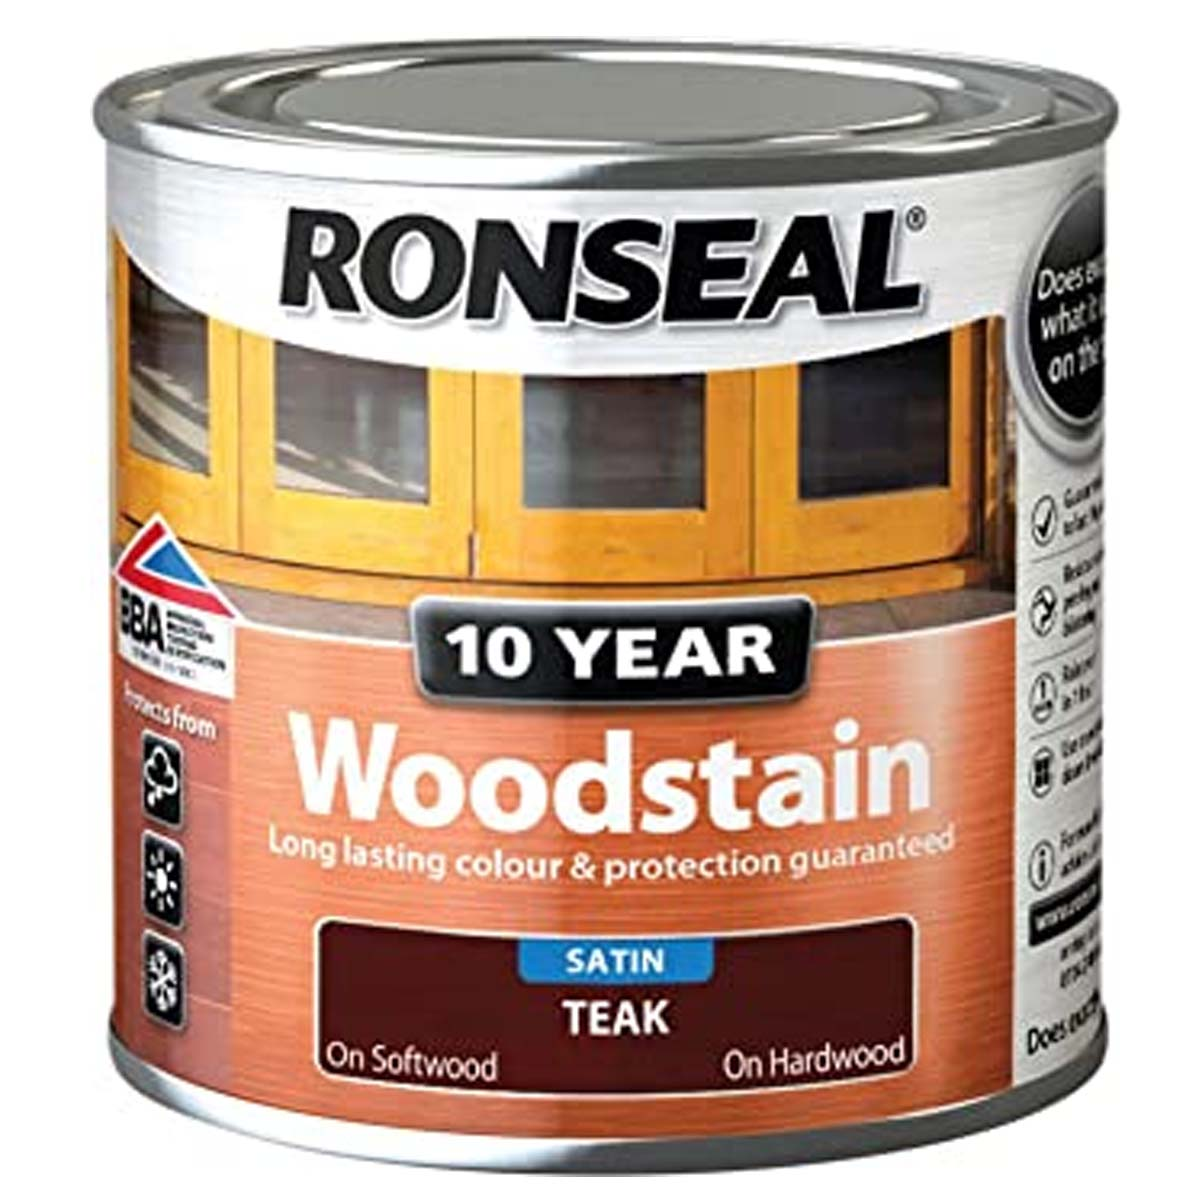 Ronseal 10Yr Woodstain柚木2.5L (38692)